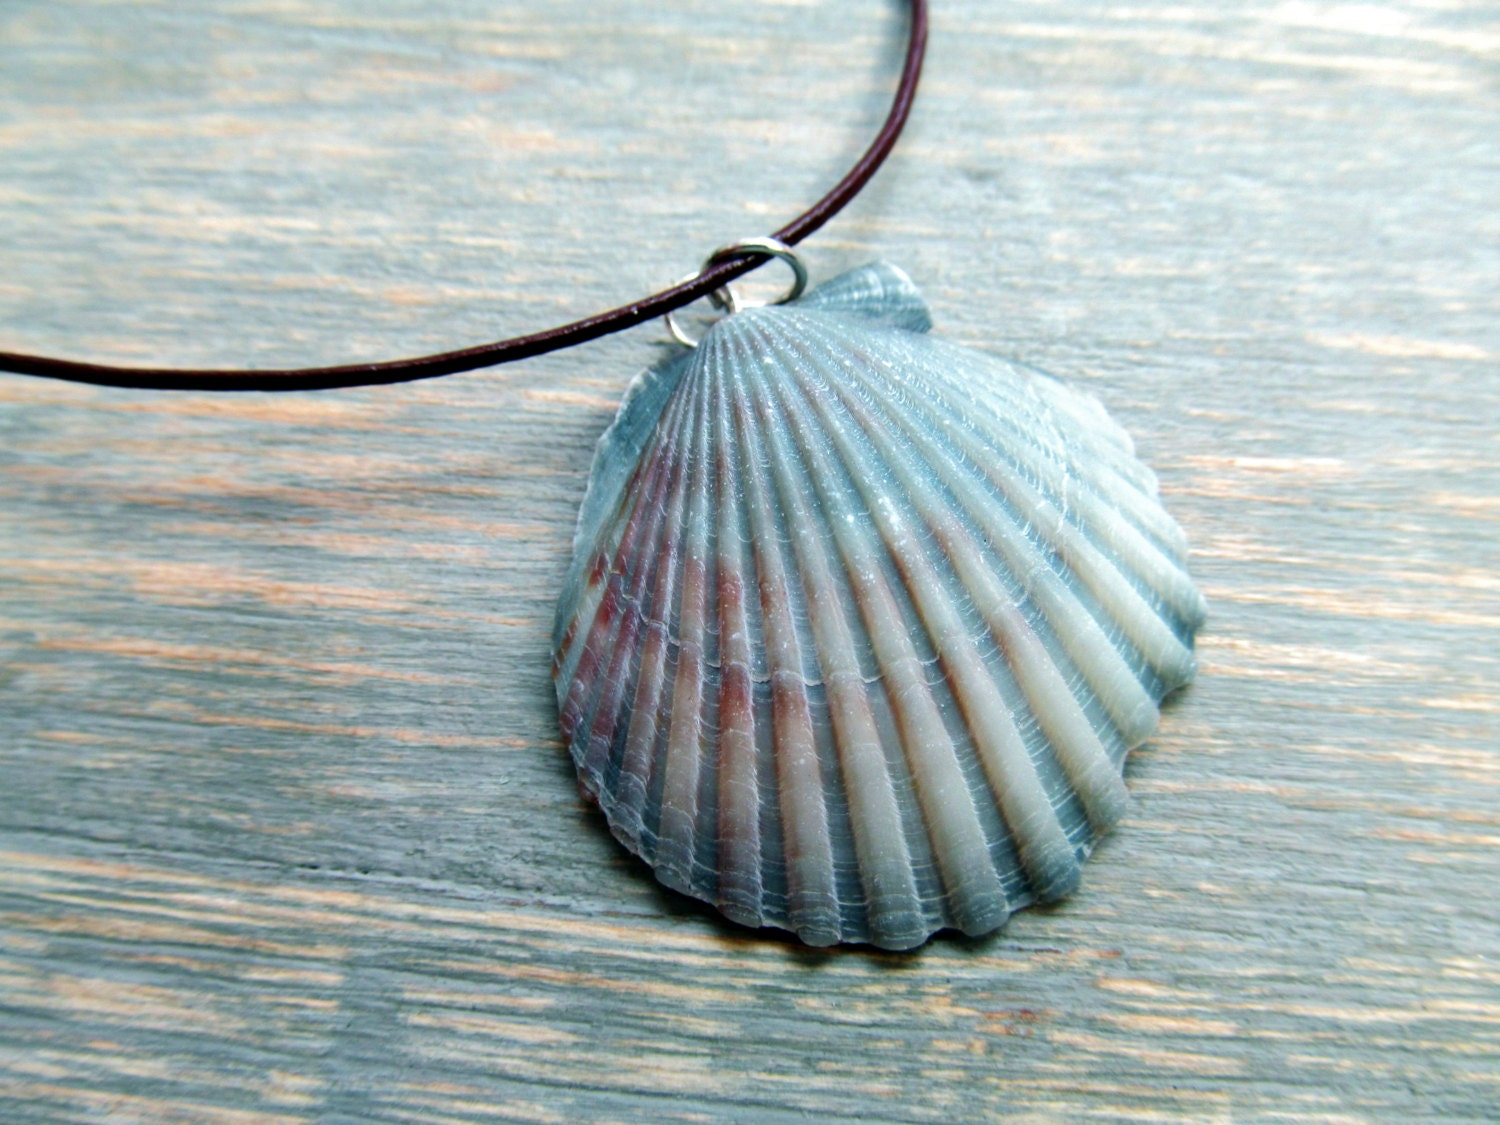 Seashell Jewelry Scallop Shell Necklace On Leather Cord